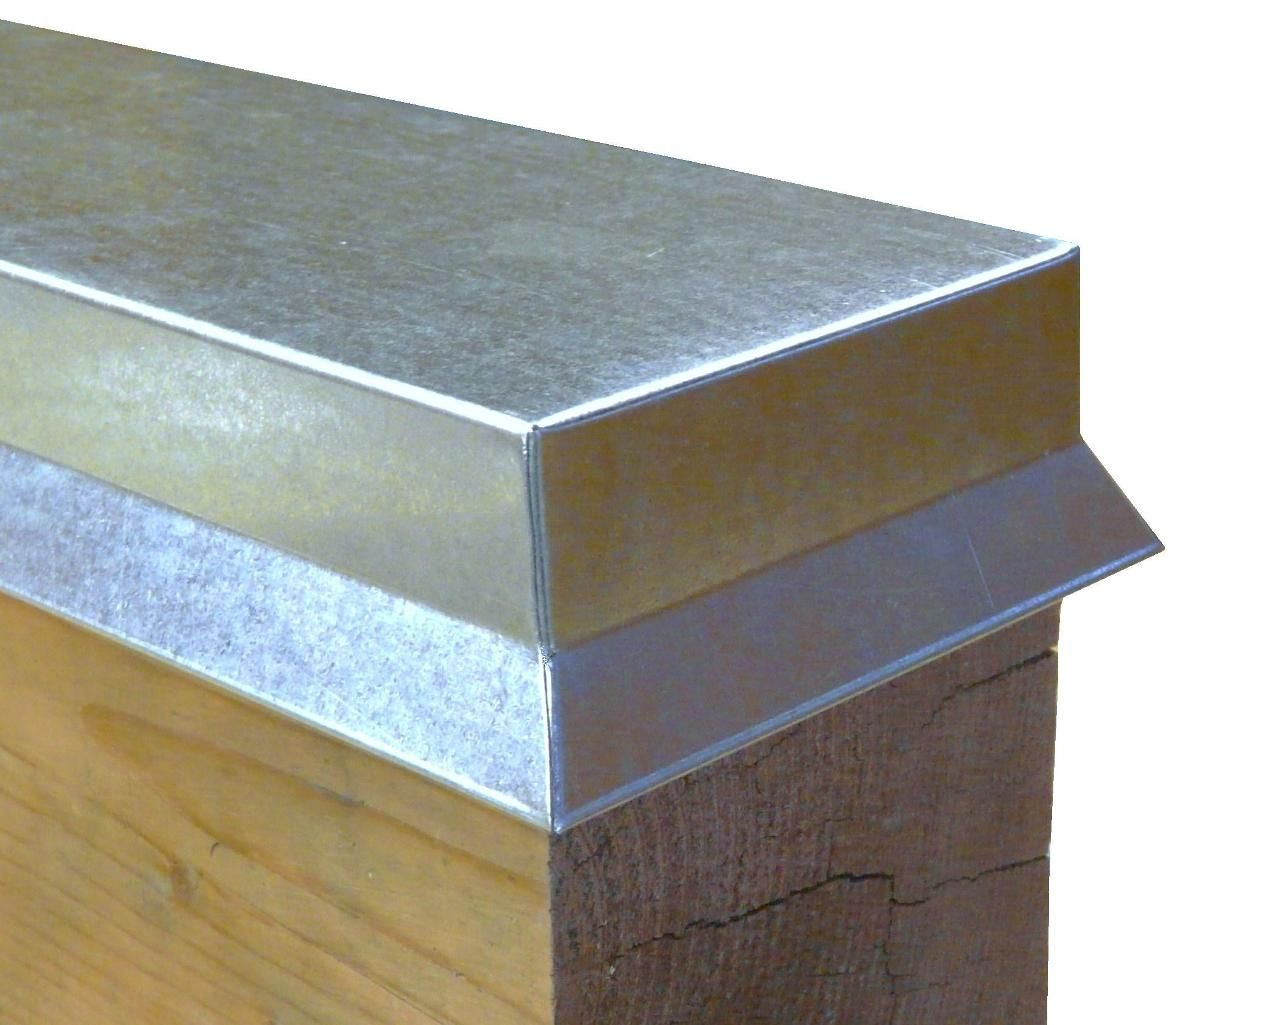 Beam Caps Rafters And Gable Support Protection Beams Galvanized Steel Timber